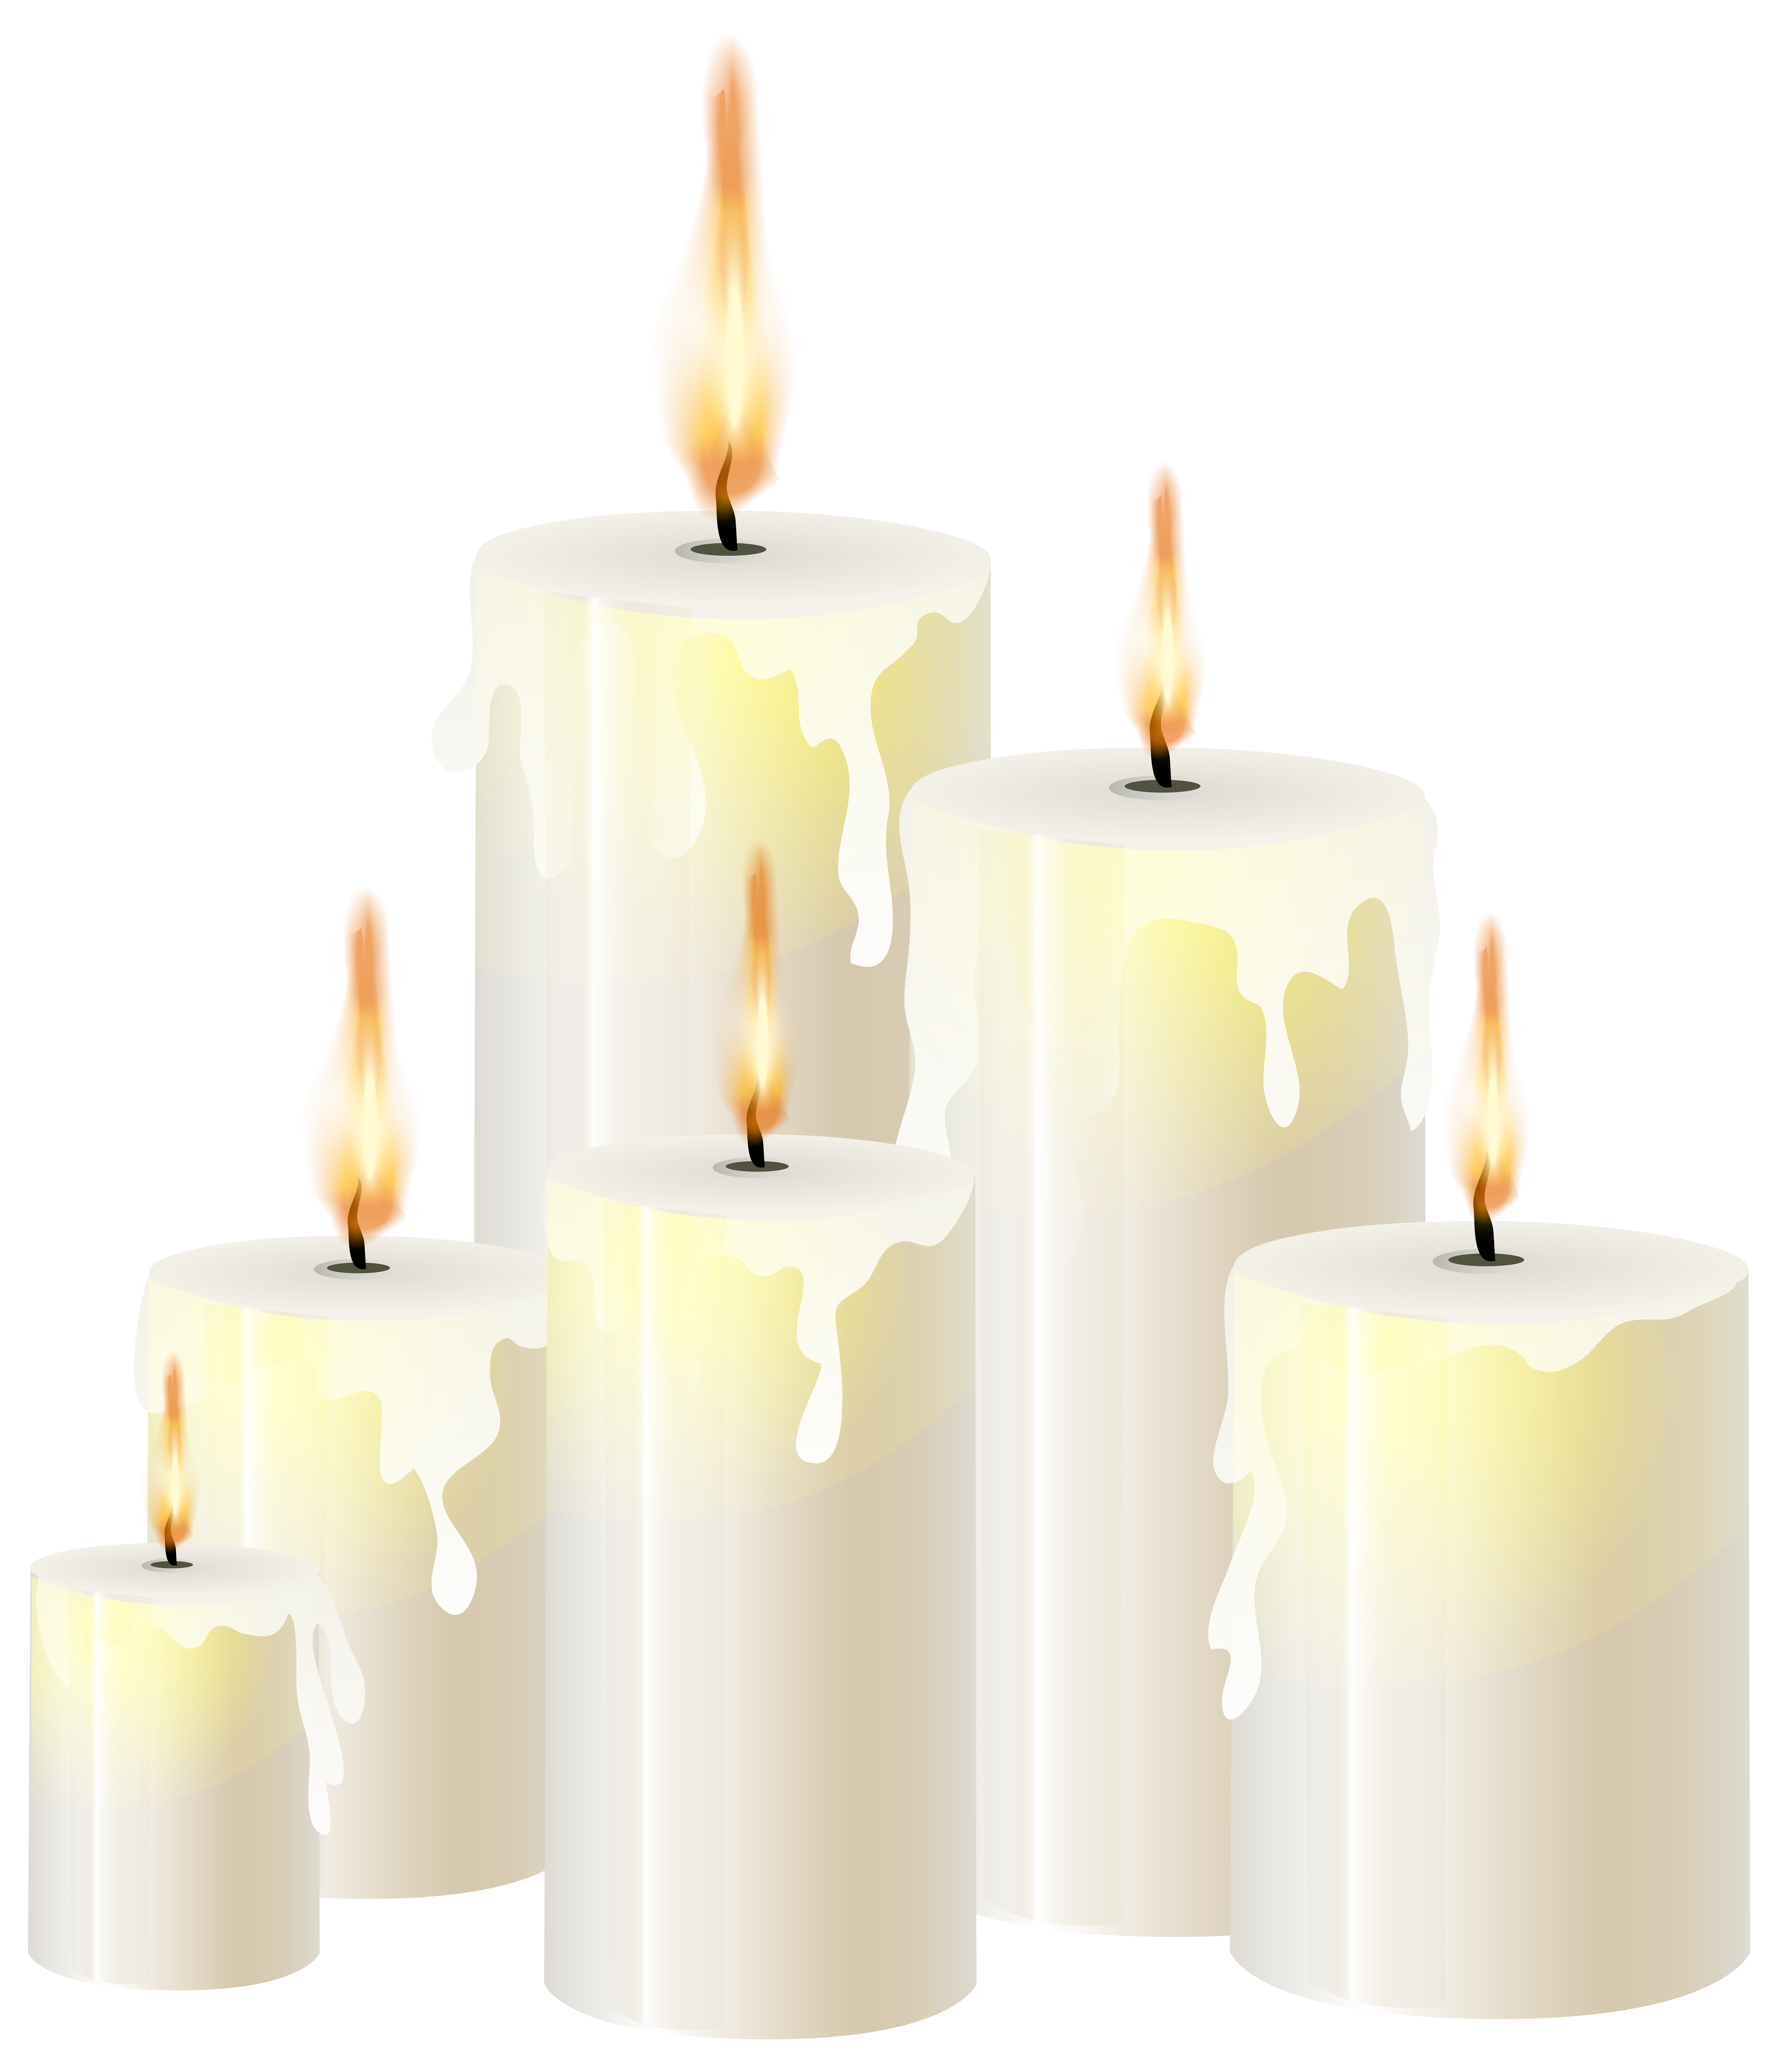 White candles clip art. Candle png clipart transparent library